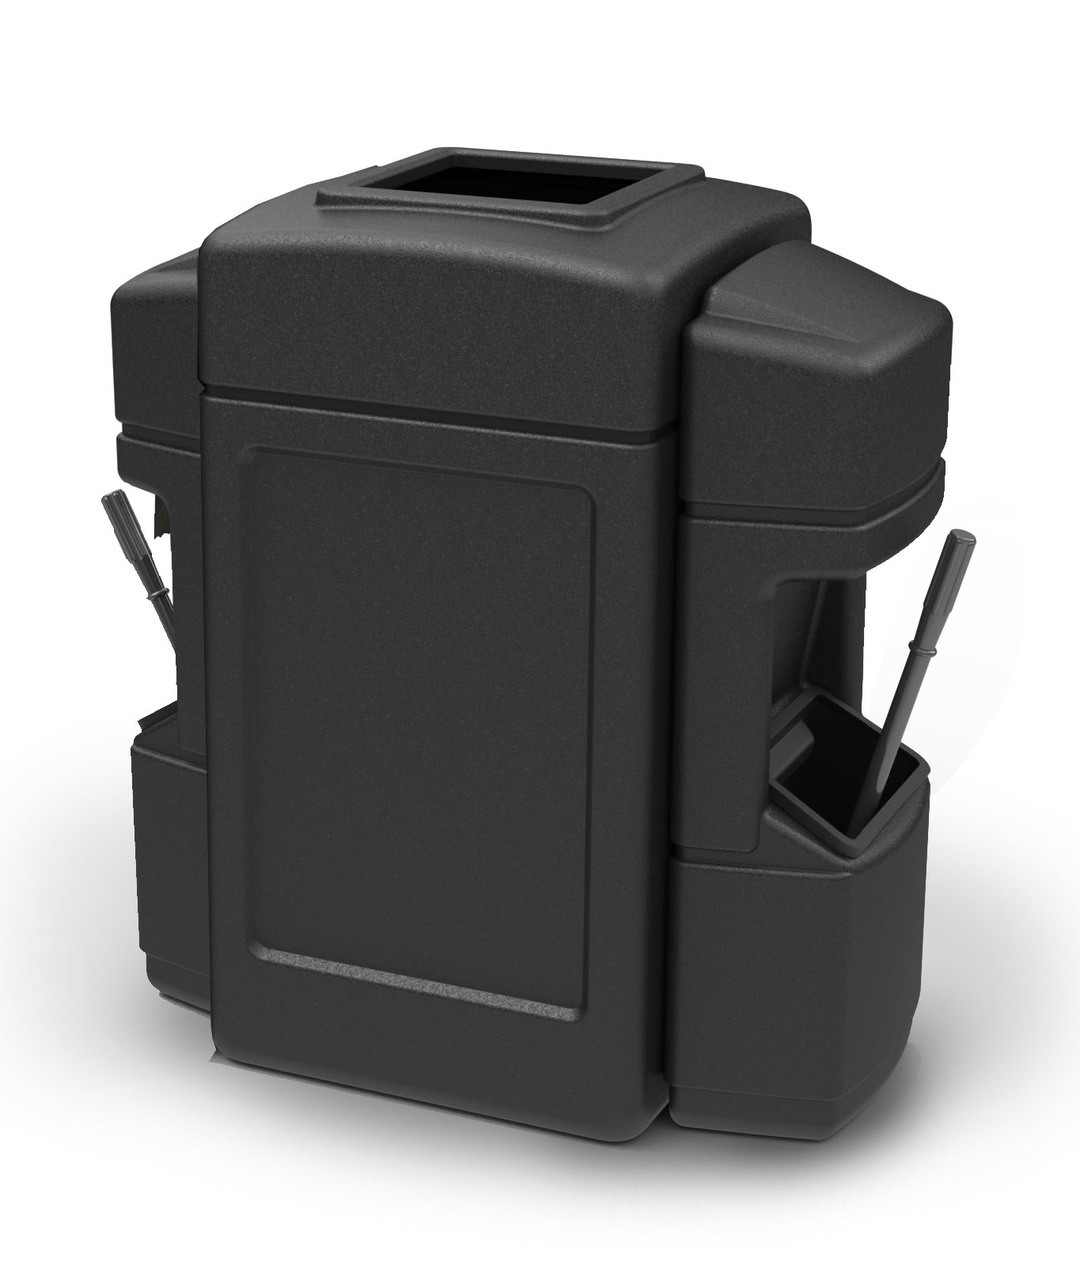 42 Gallon Aruba 2 Trash Can with Dual Windshield Service Centers 75990199